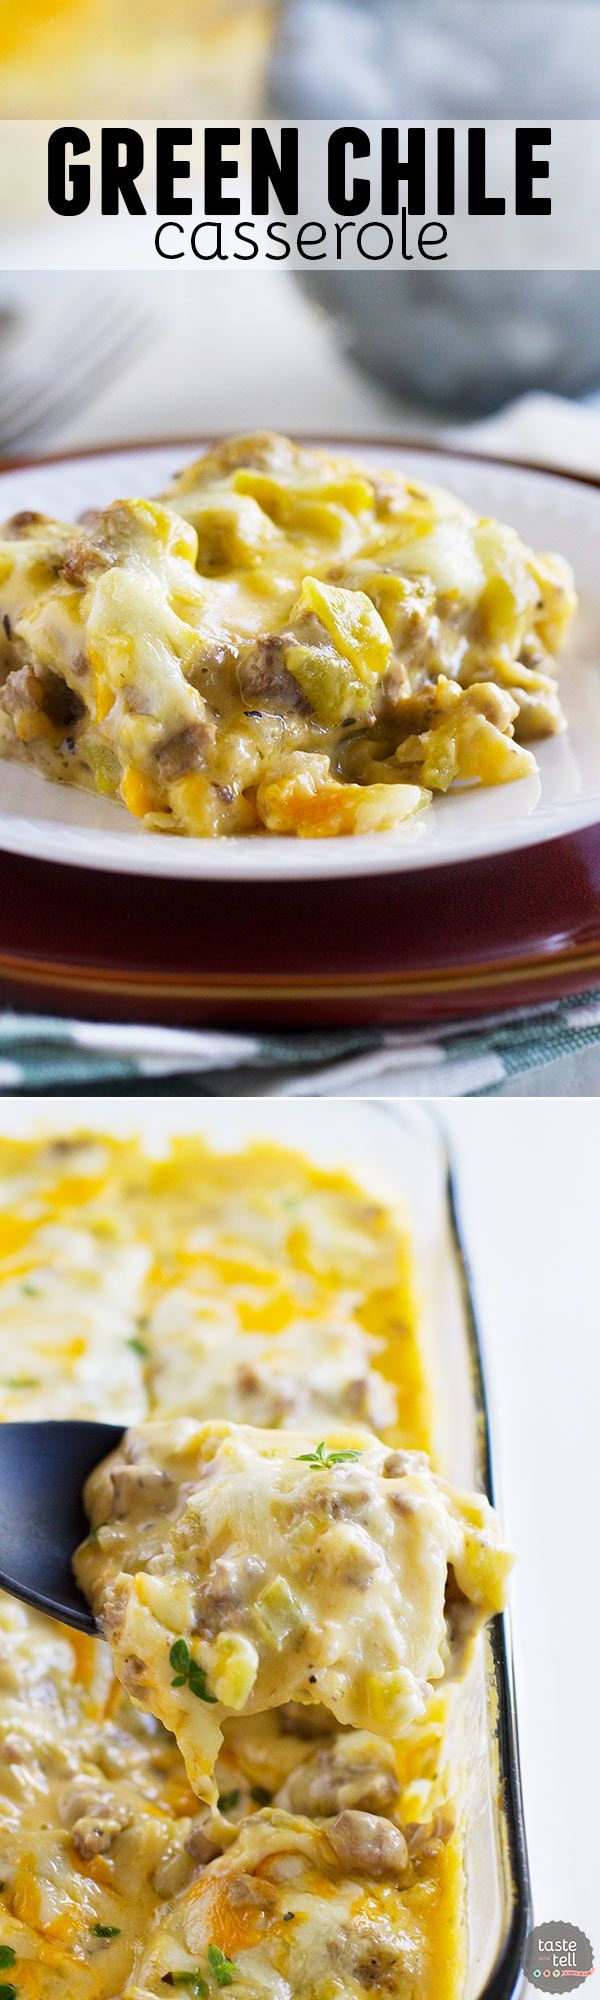 Comforting and creamy, this Green Chile Casserole is simple to prepare and reminds me of home.: